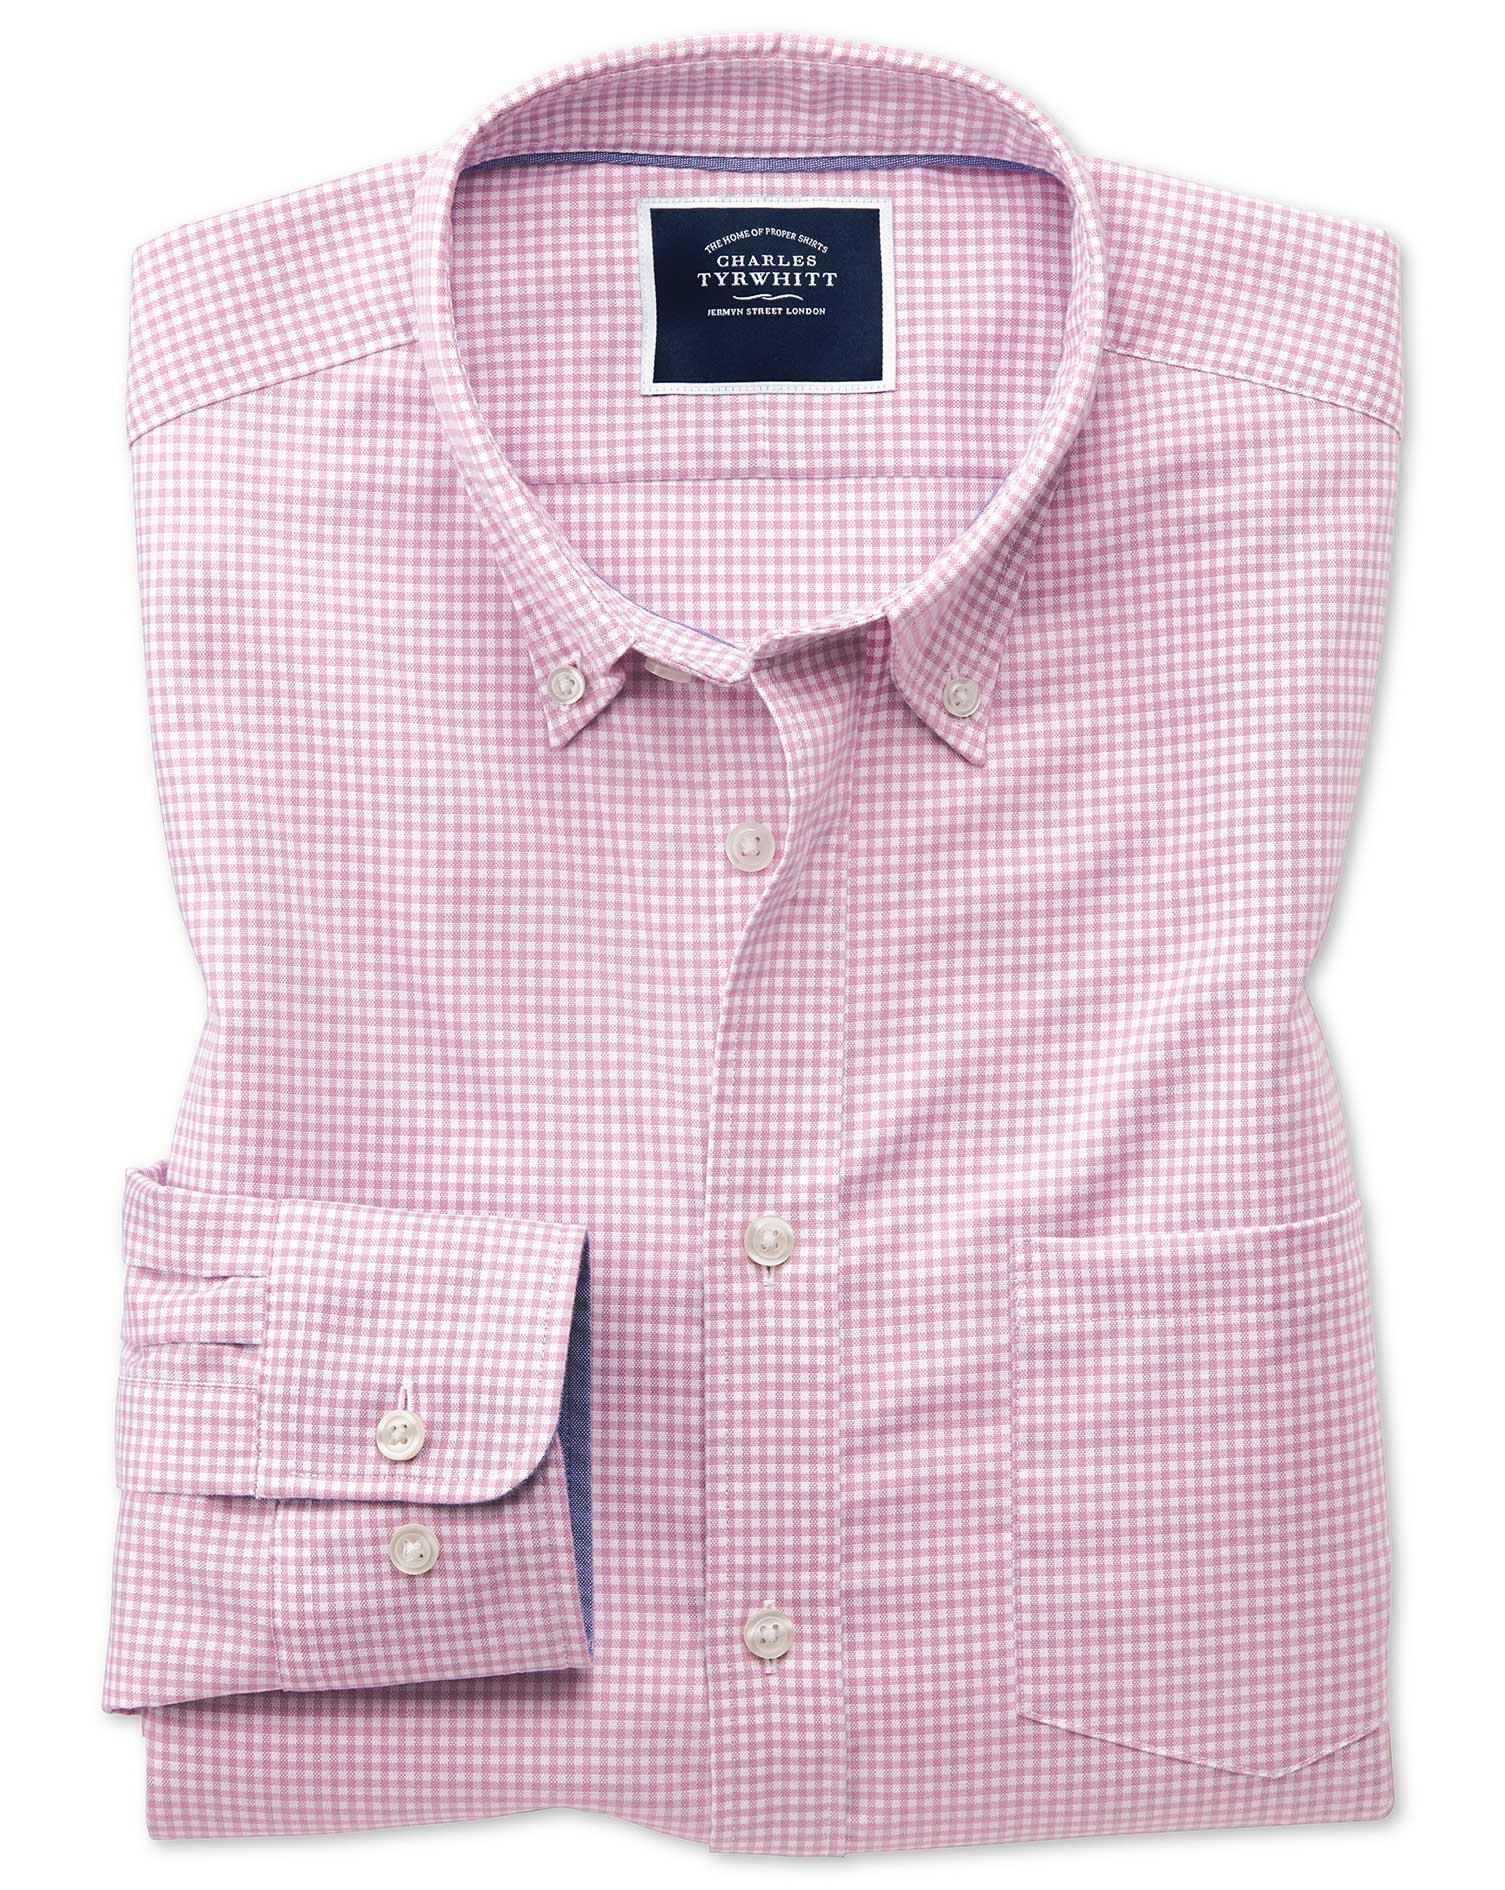 Slim Fit Pink Gingham Soft Washed Non-Iron Stretch Cotton Shirt Single Cuff Size XS by Charles Tyrwh